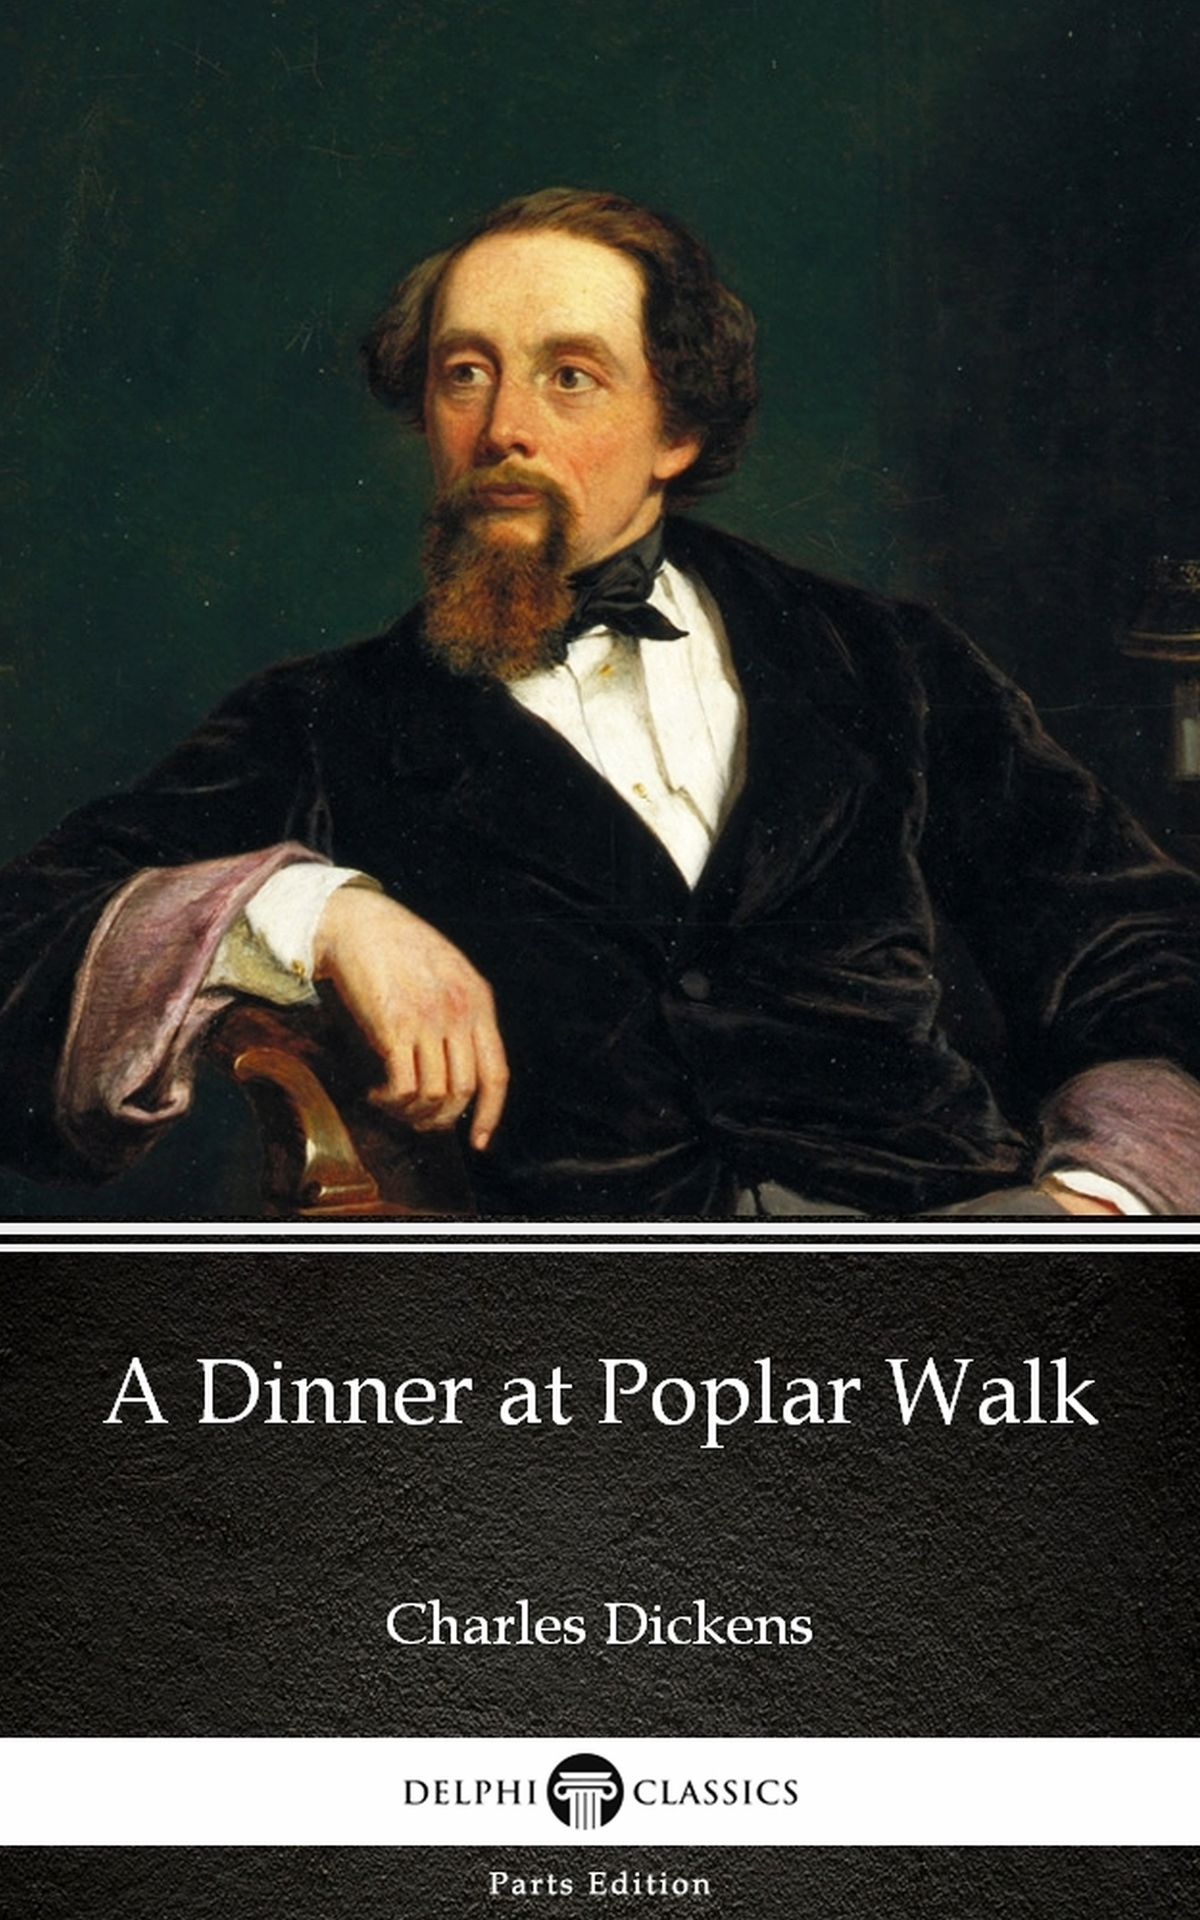 Charles Dickens books 1